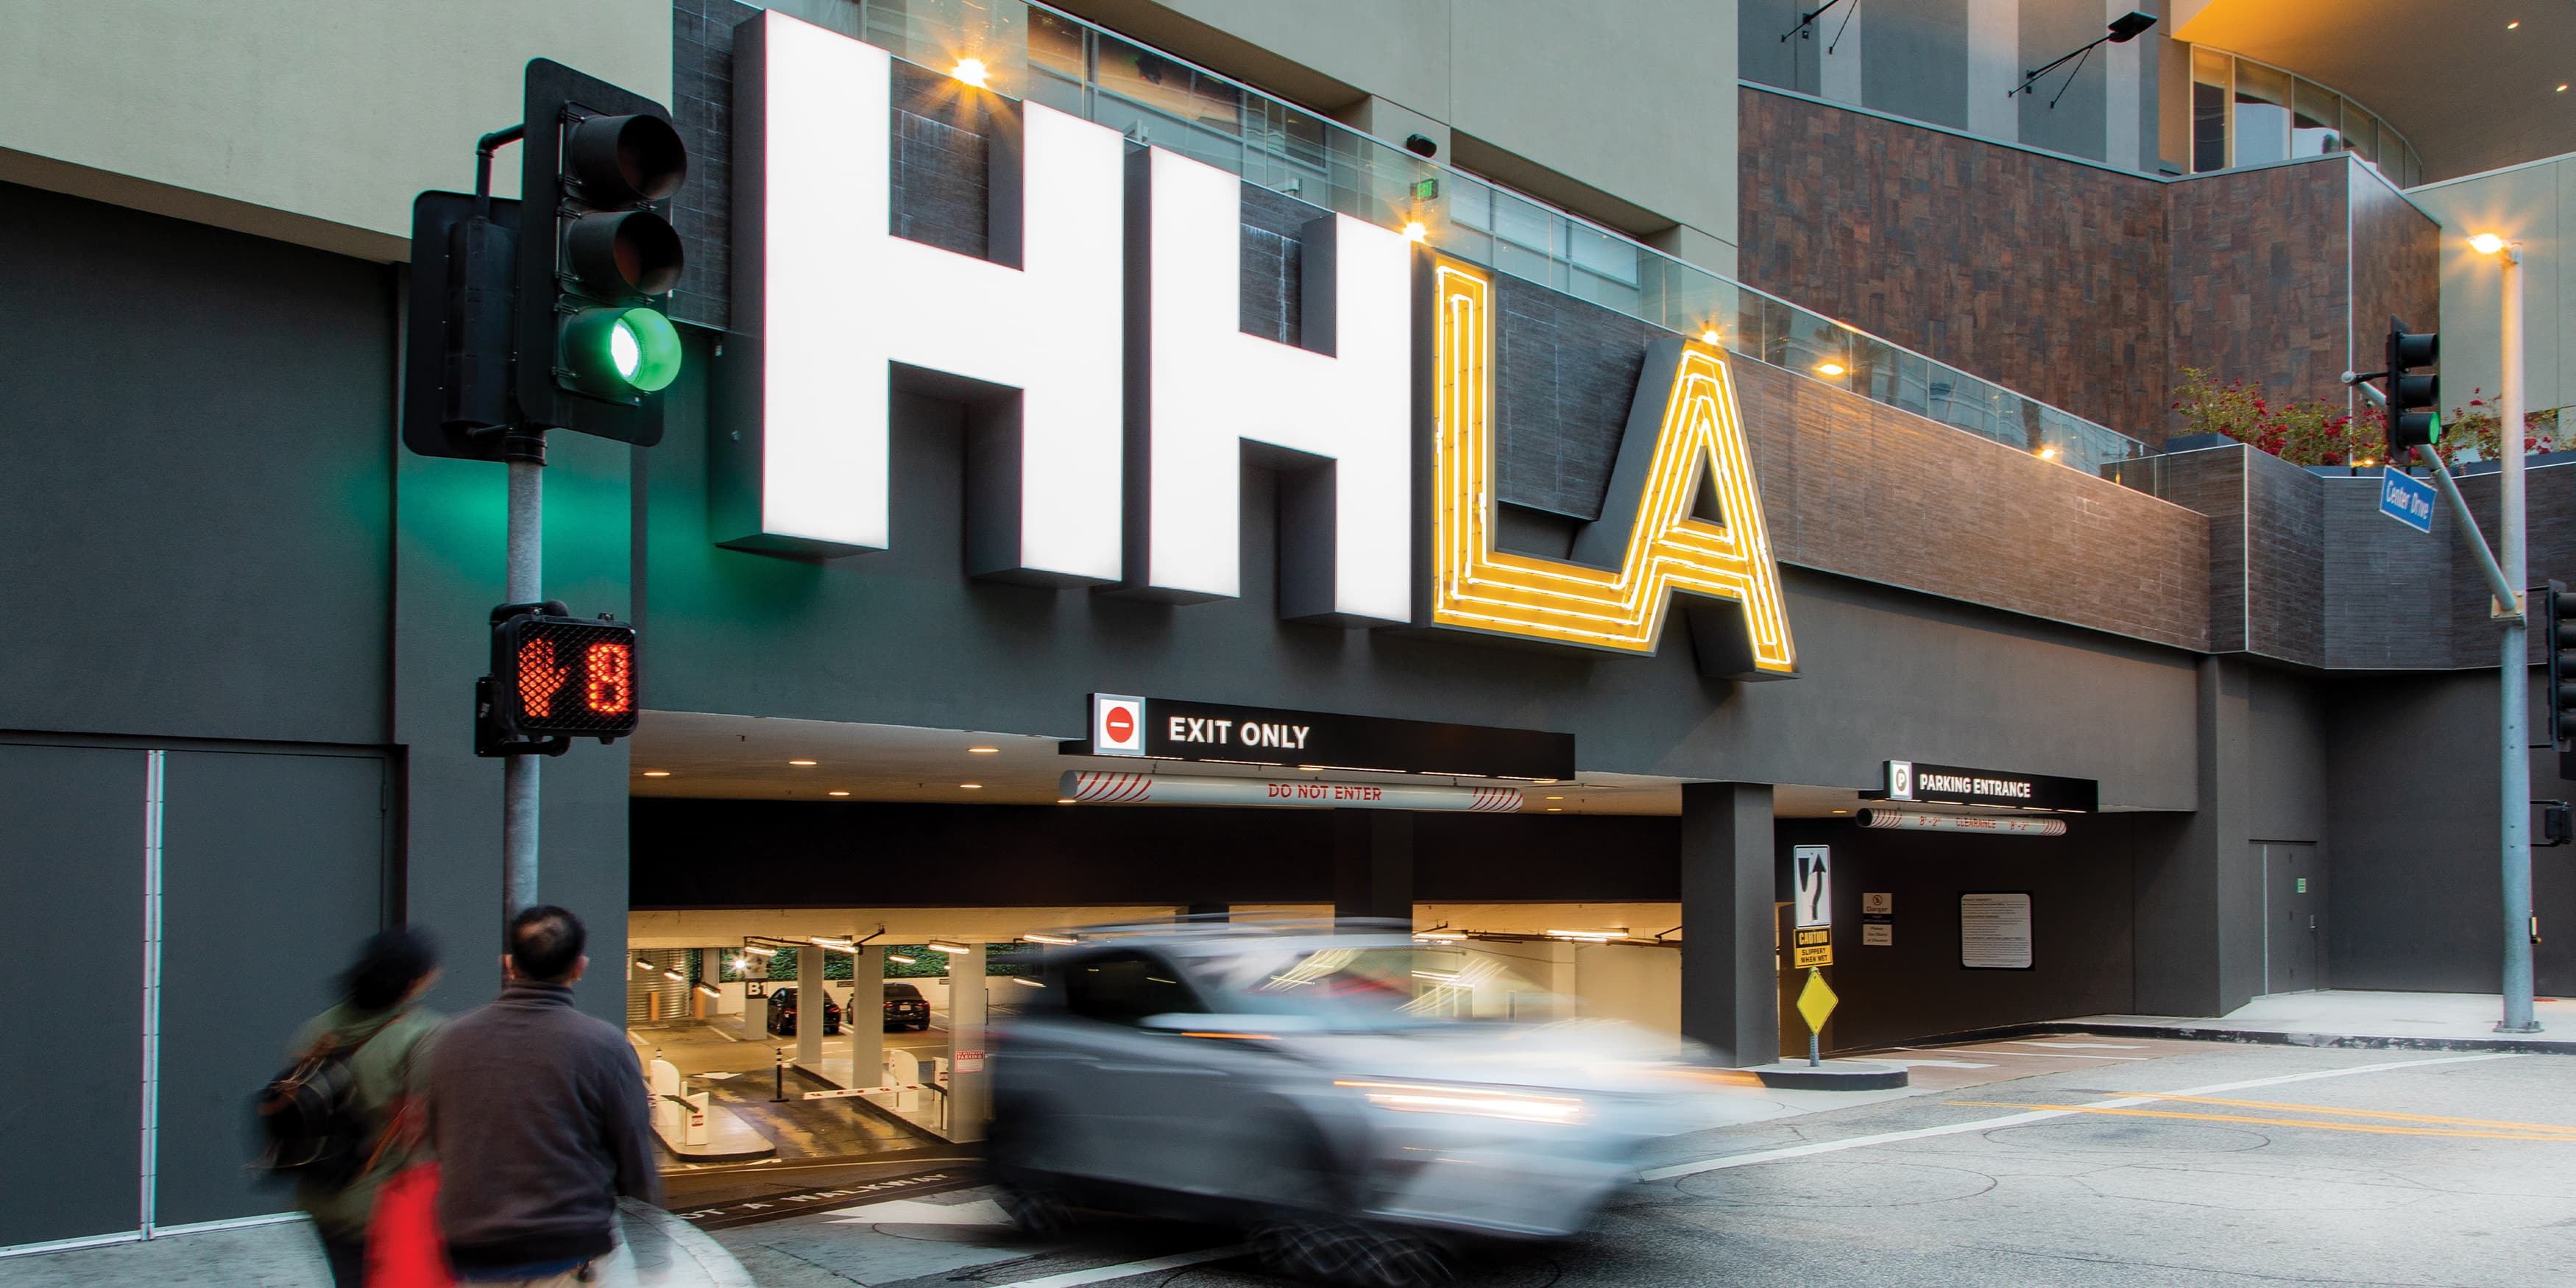 HHLA illuminated project identity signage